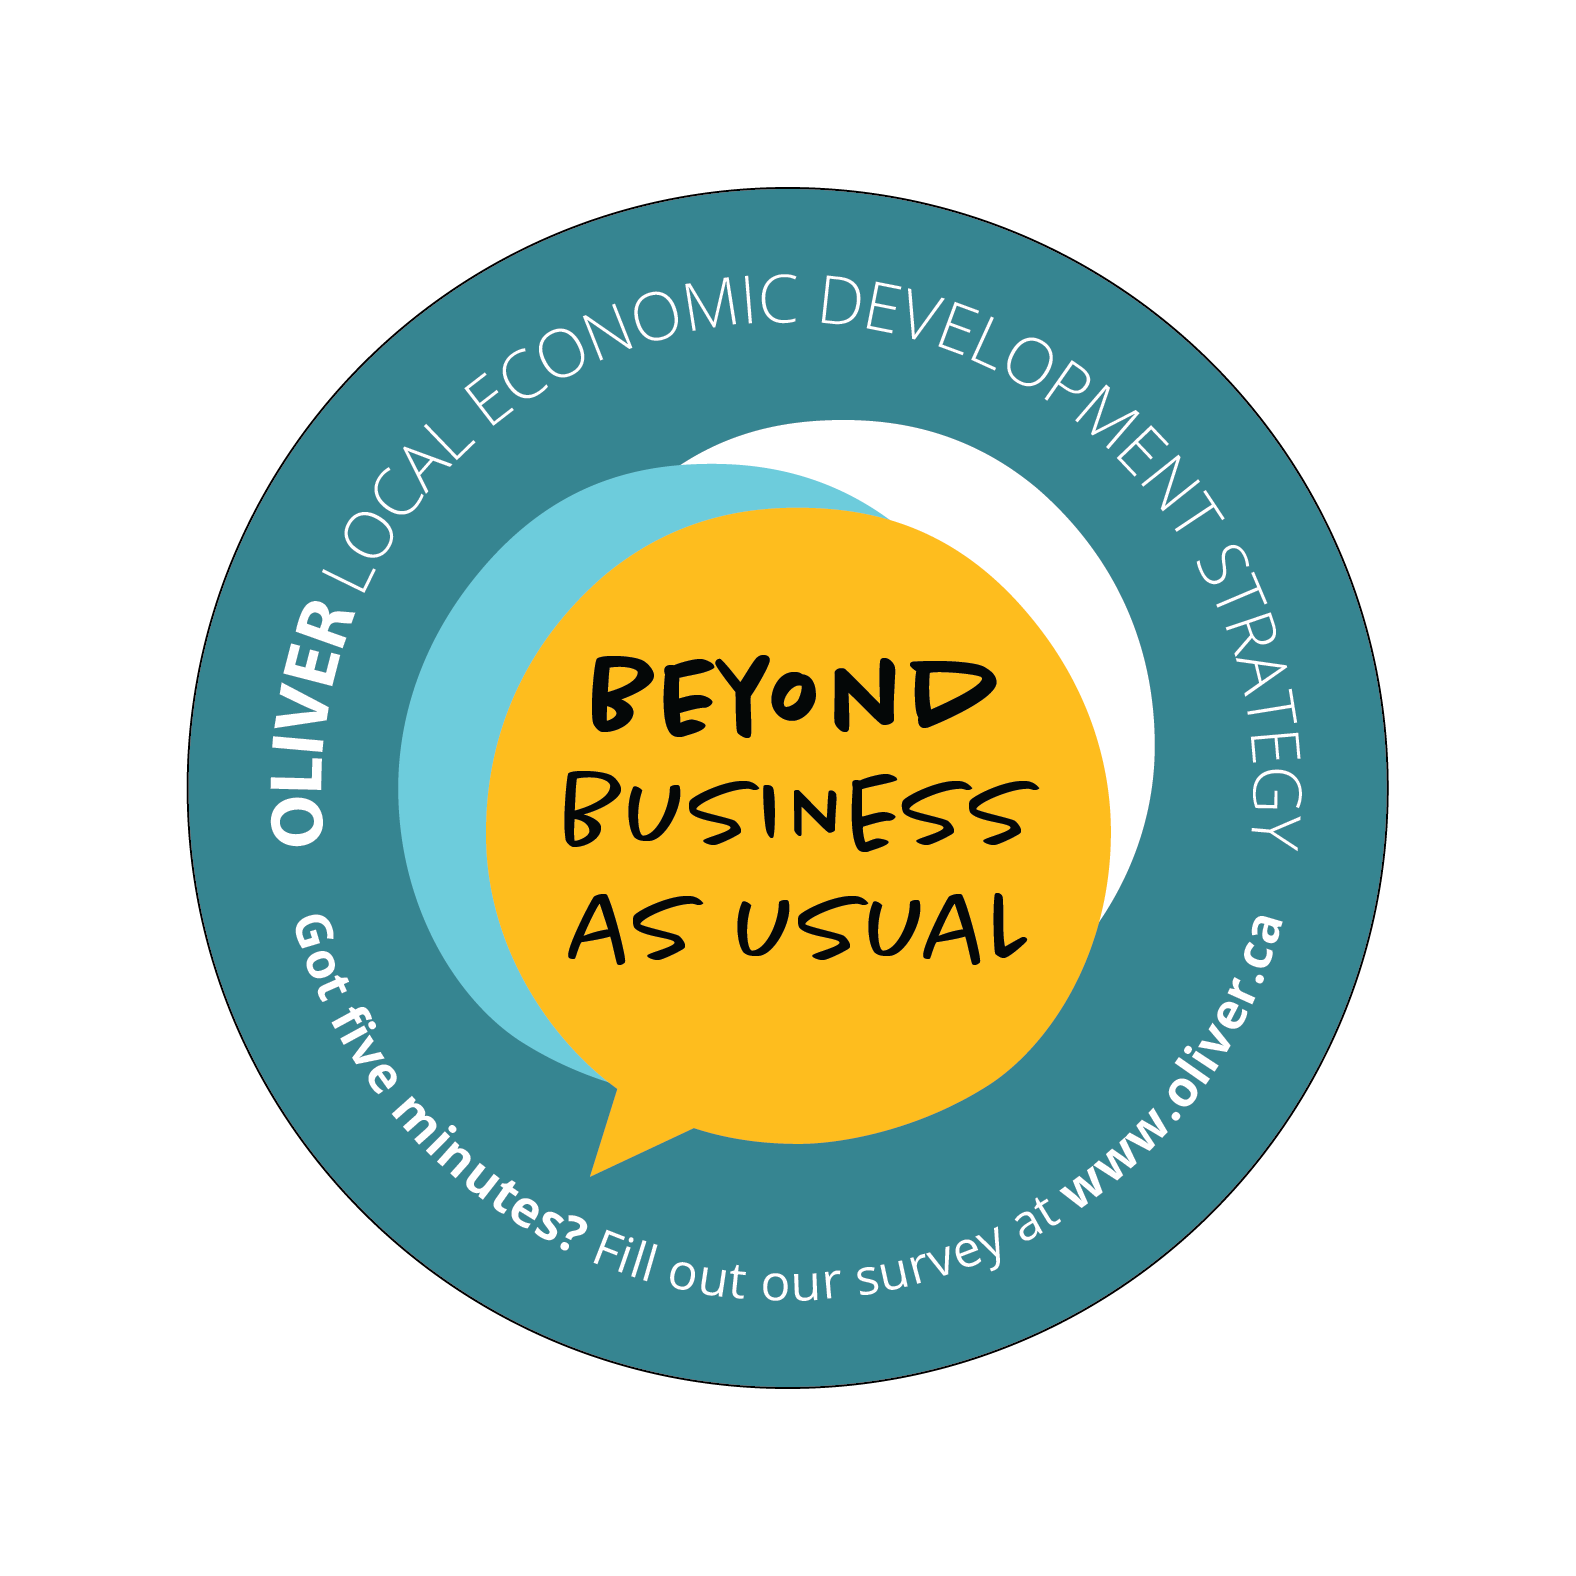 What ACTIONS can Oliver take to meet our economic development objectives?